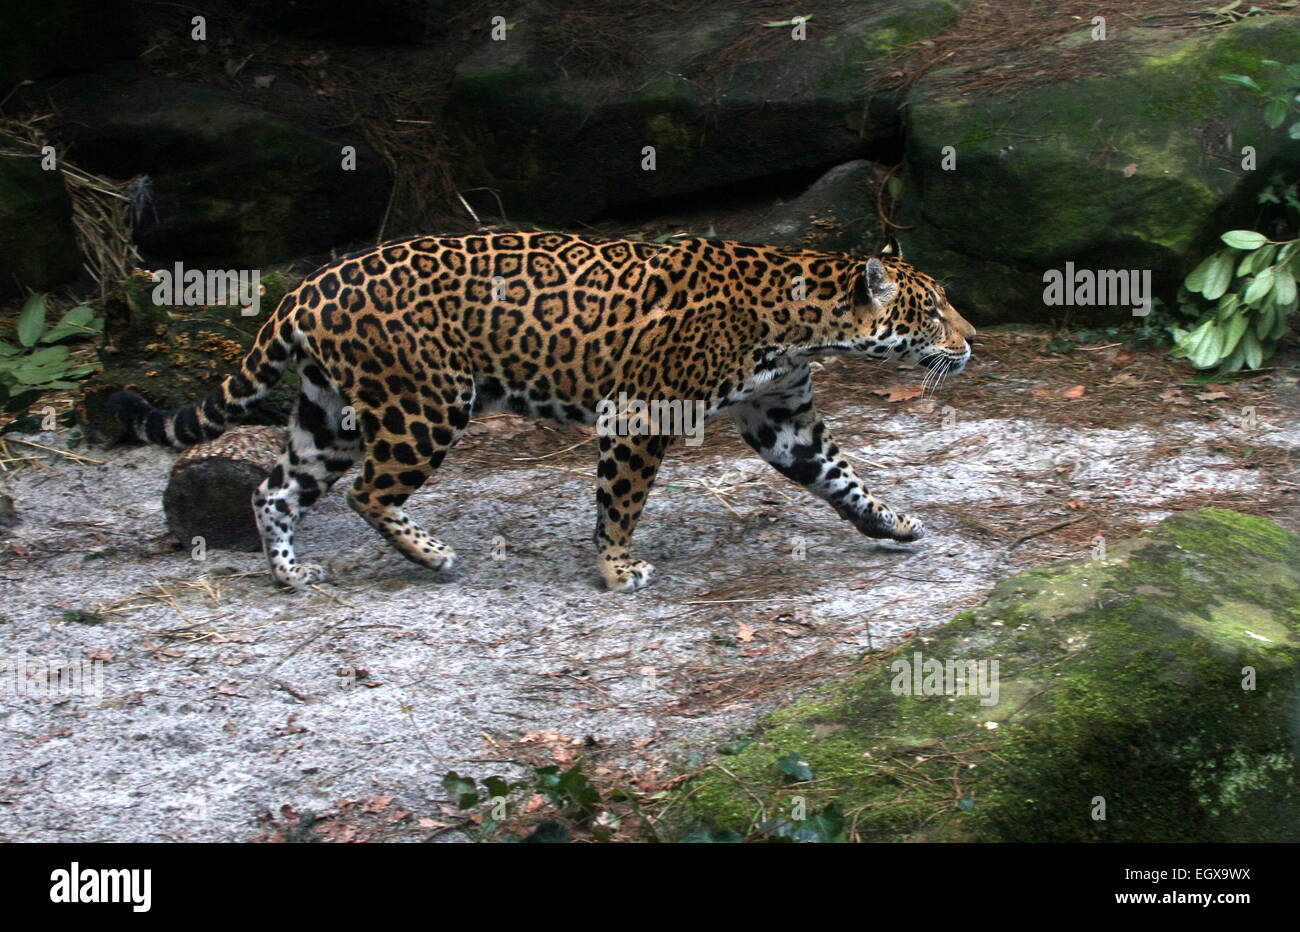 Female South American Jaguar (Panthera Onca) Walking In A Shady Forest  Setting   Stock